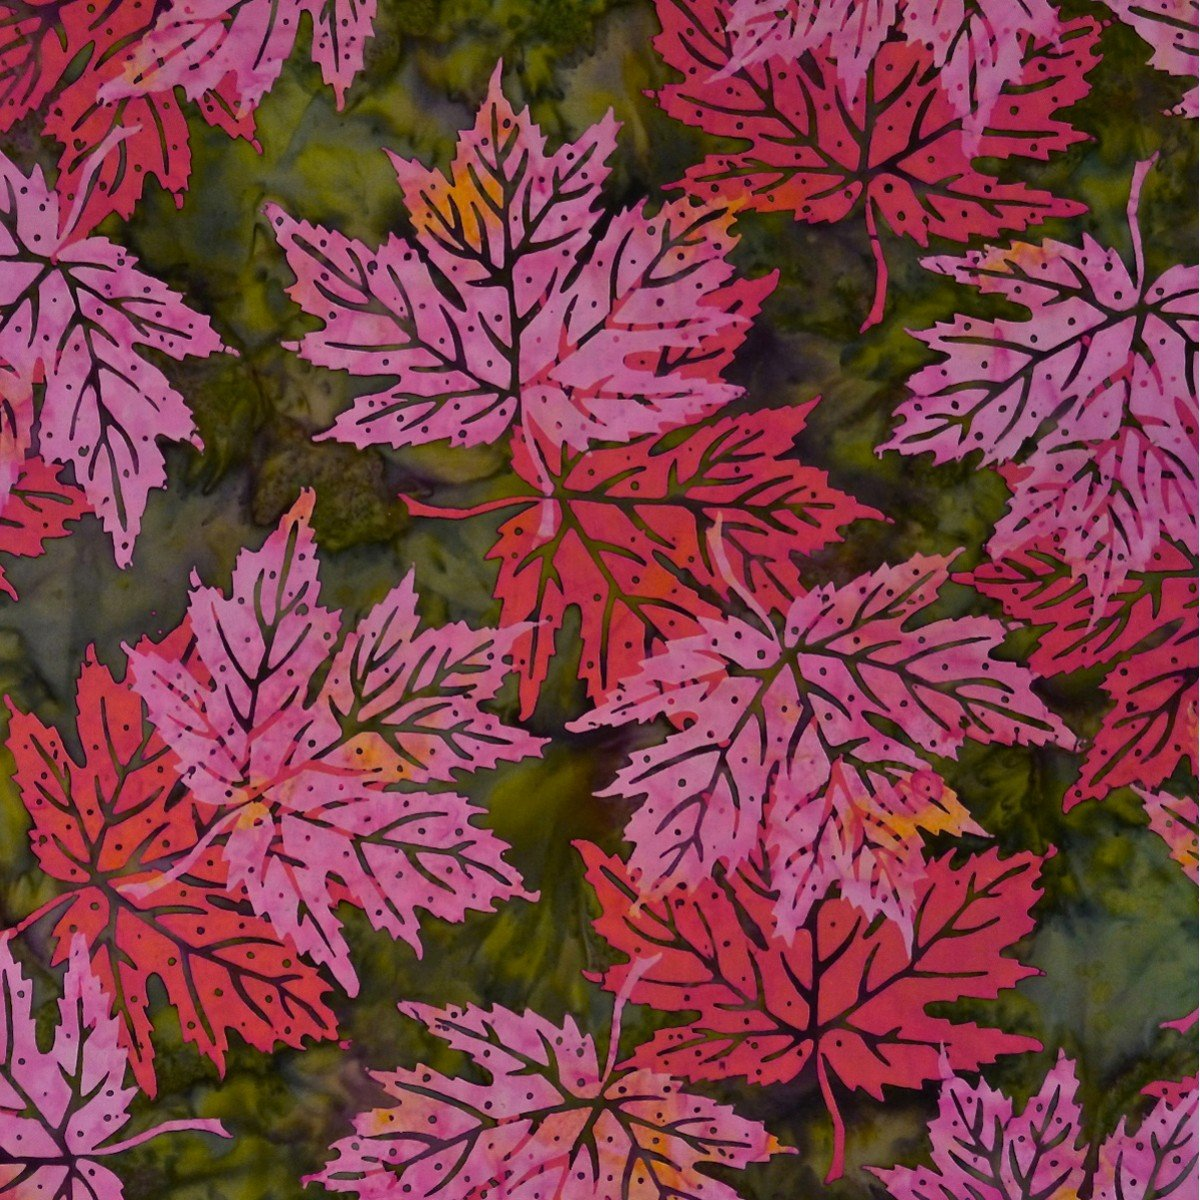 Batik by Mirah - bazaar - red & pink flowers on green